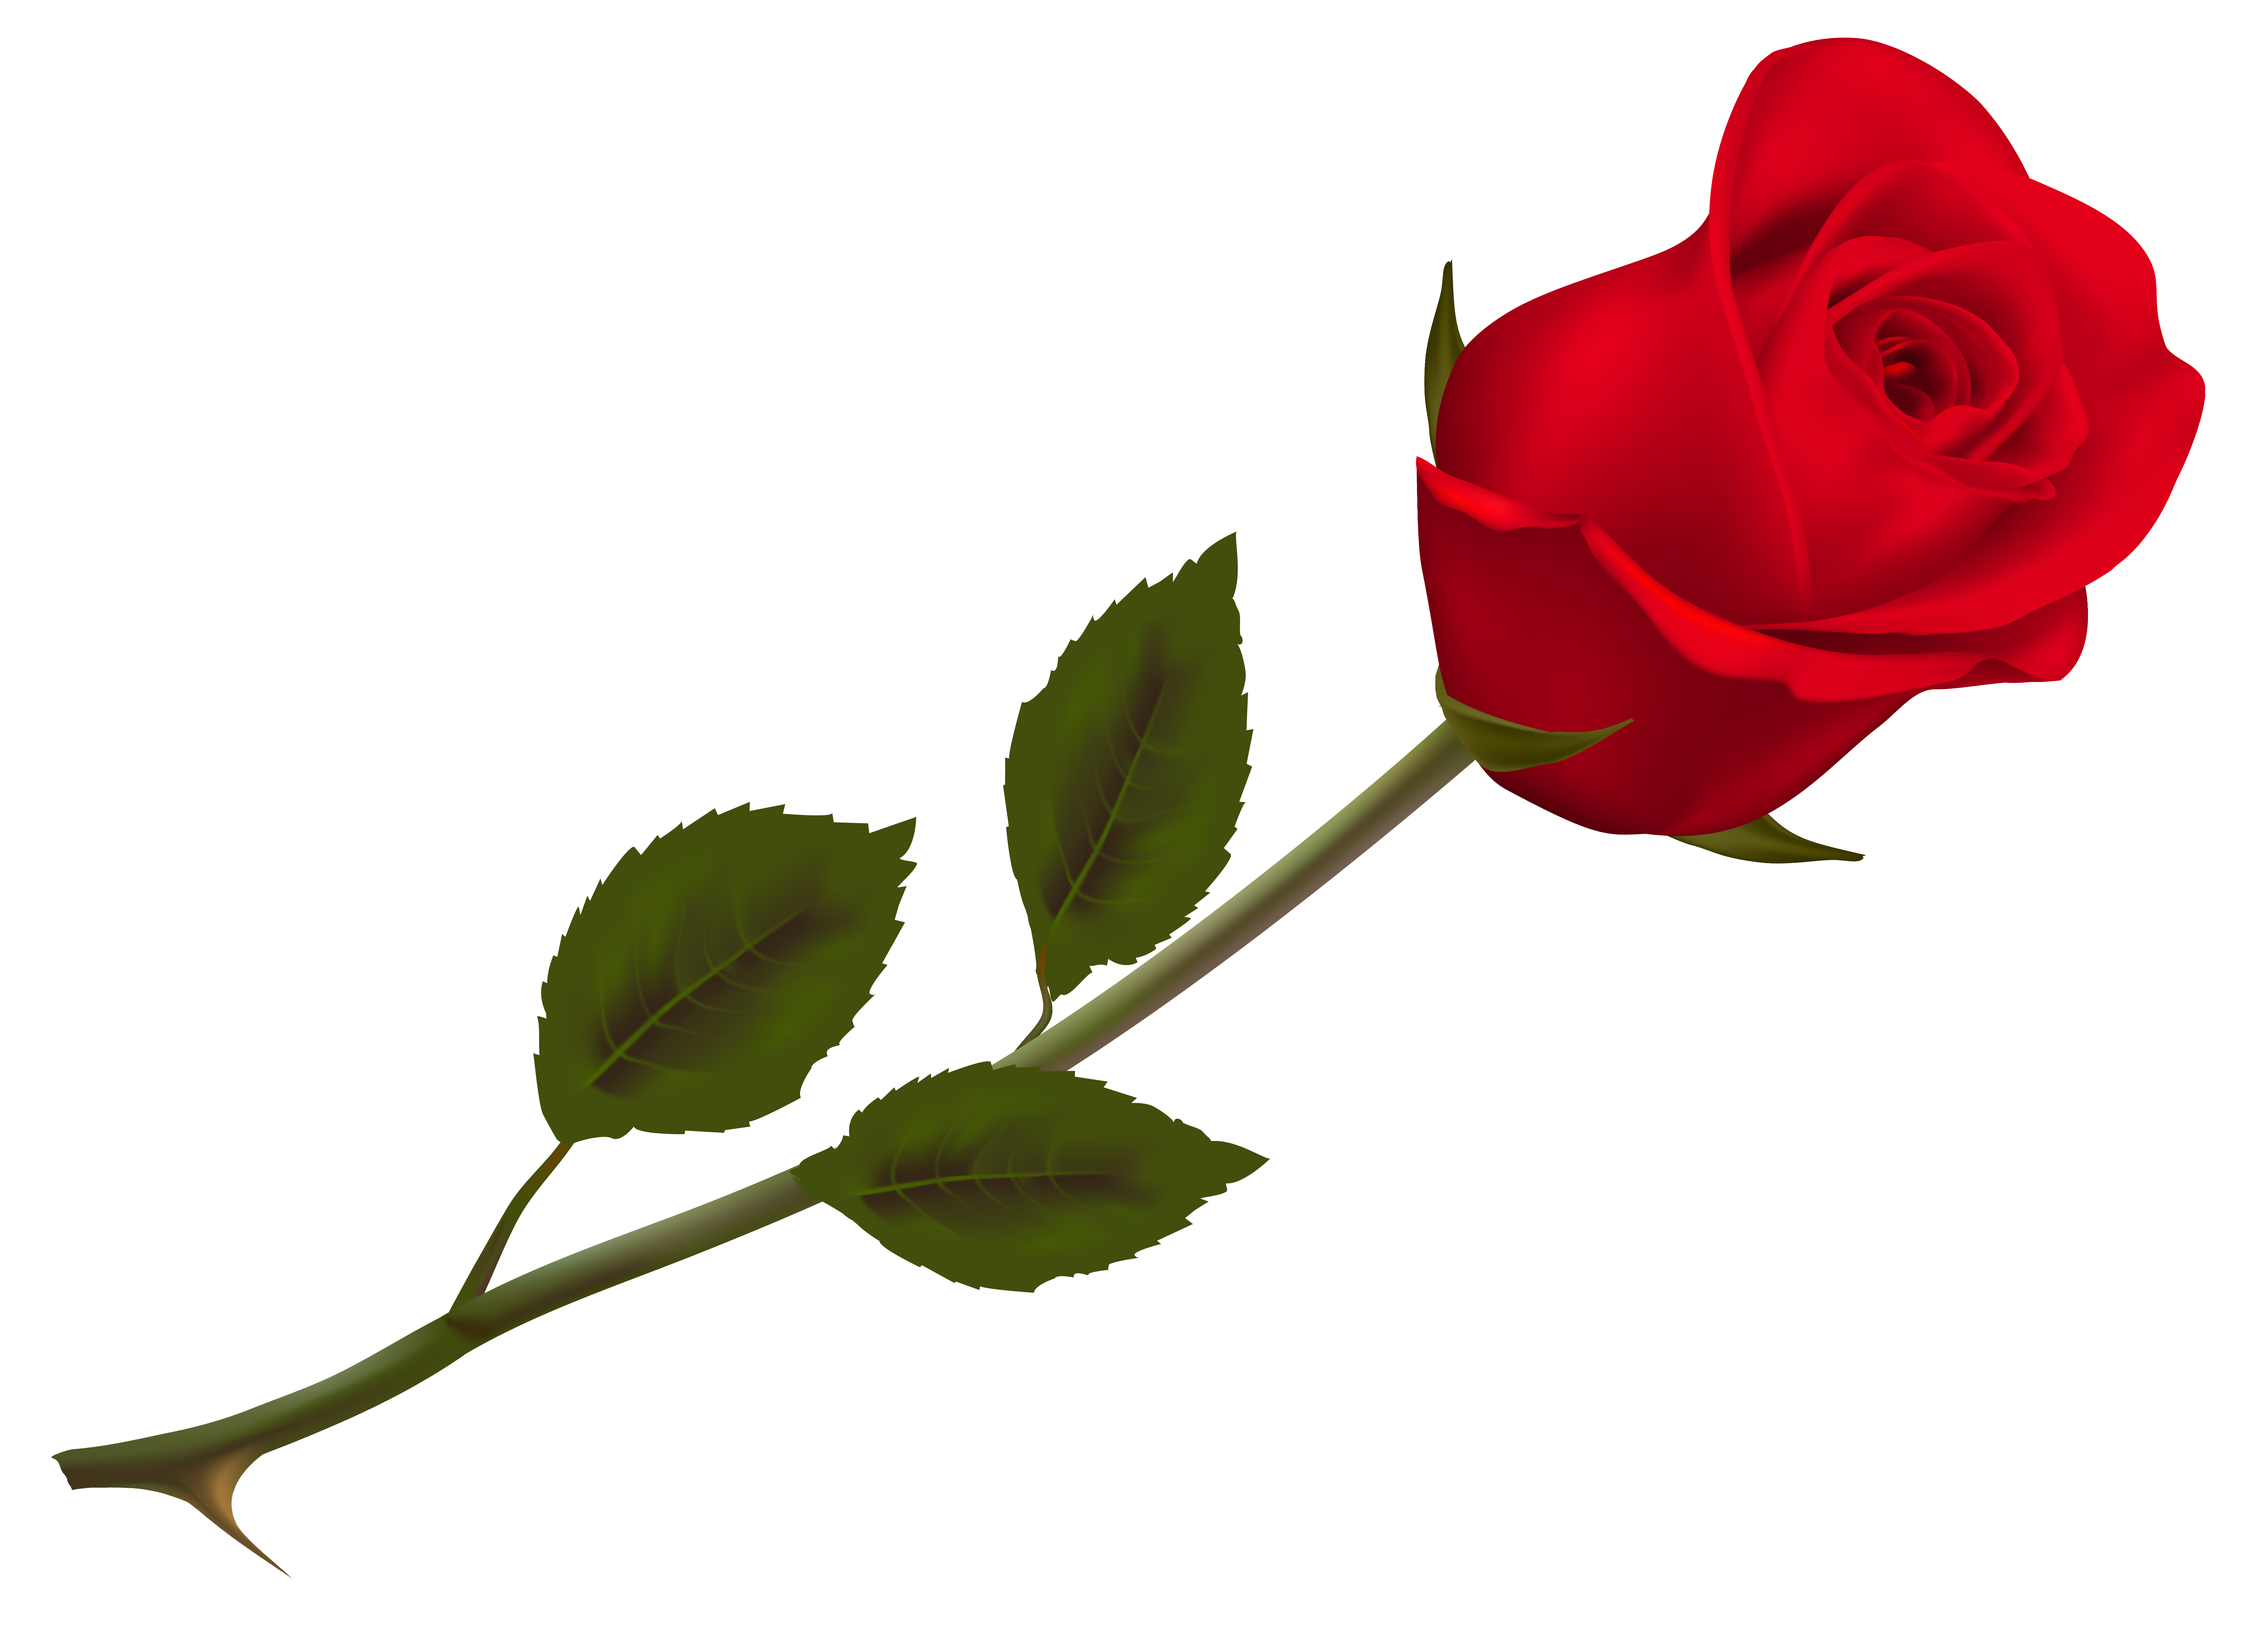 Transparent Beautiful Red Rose PNG Picture | Gallery Yopriceville ... graphic download